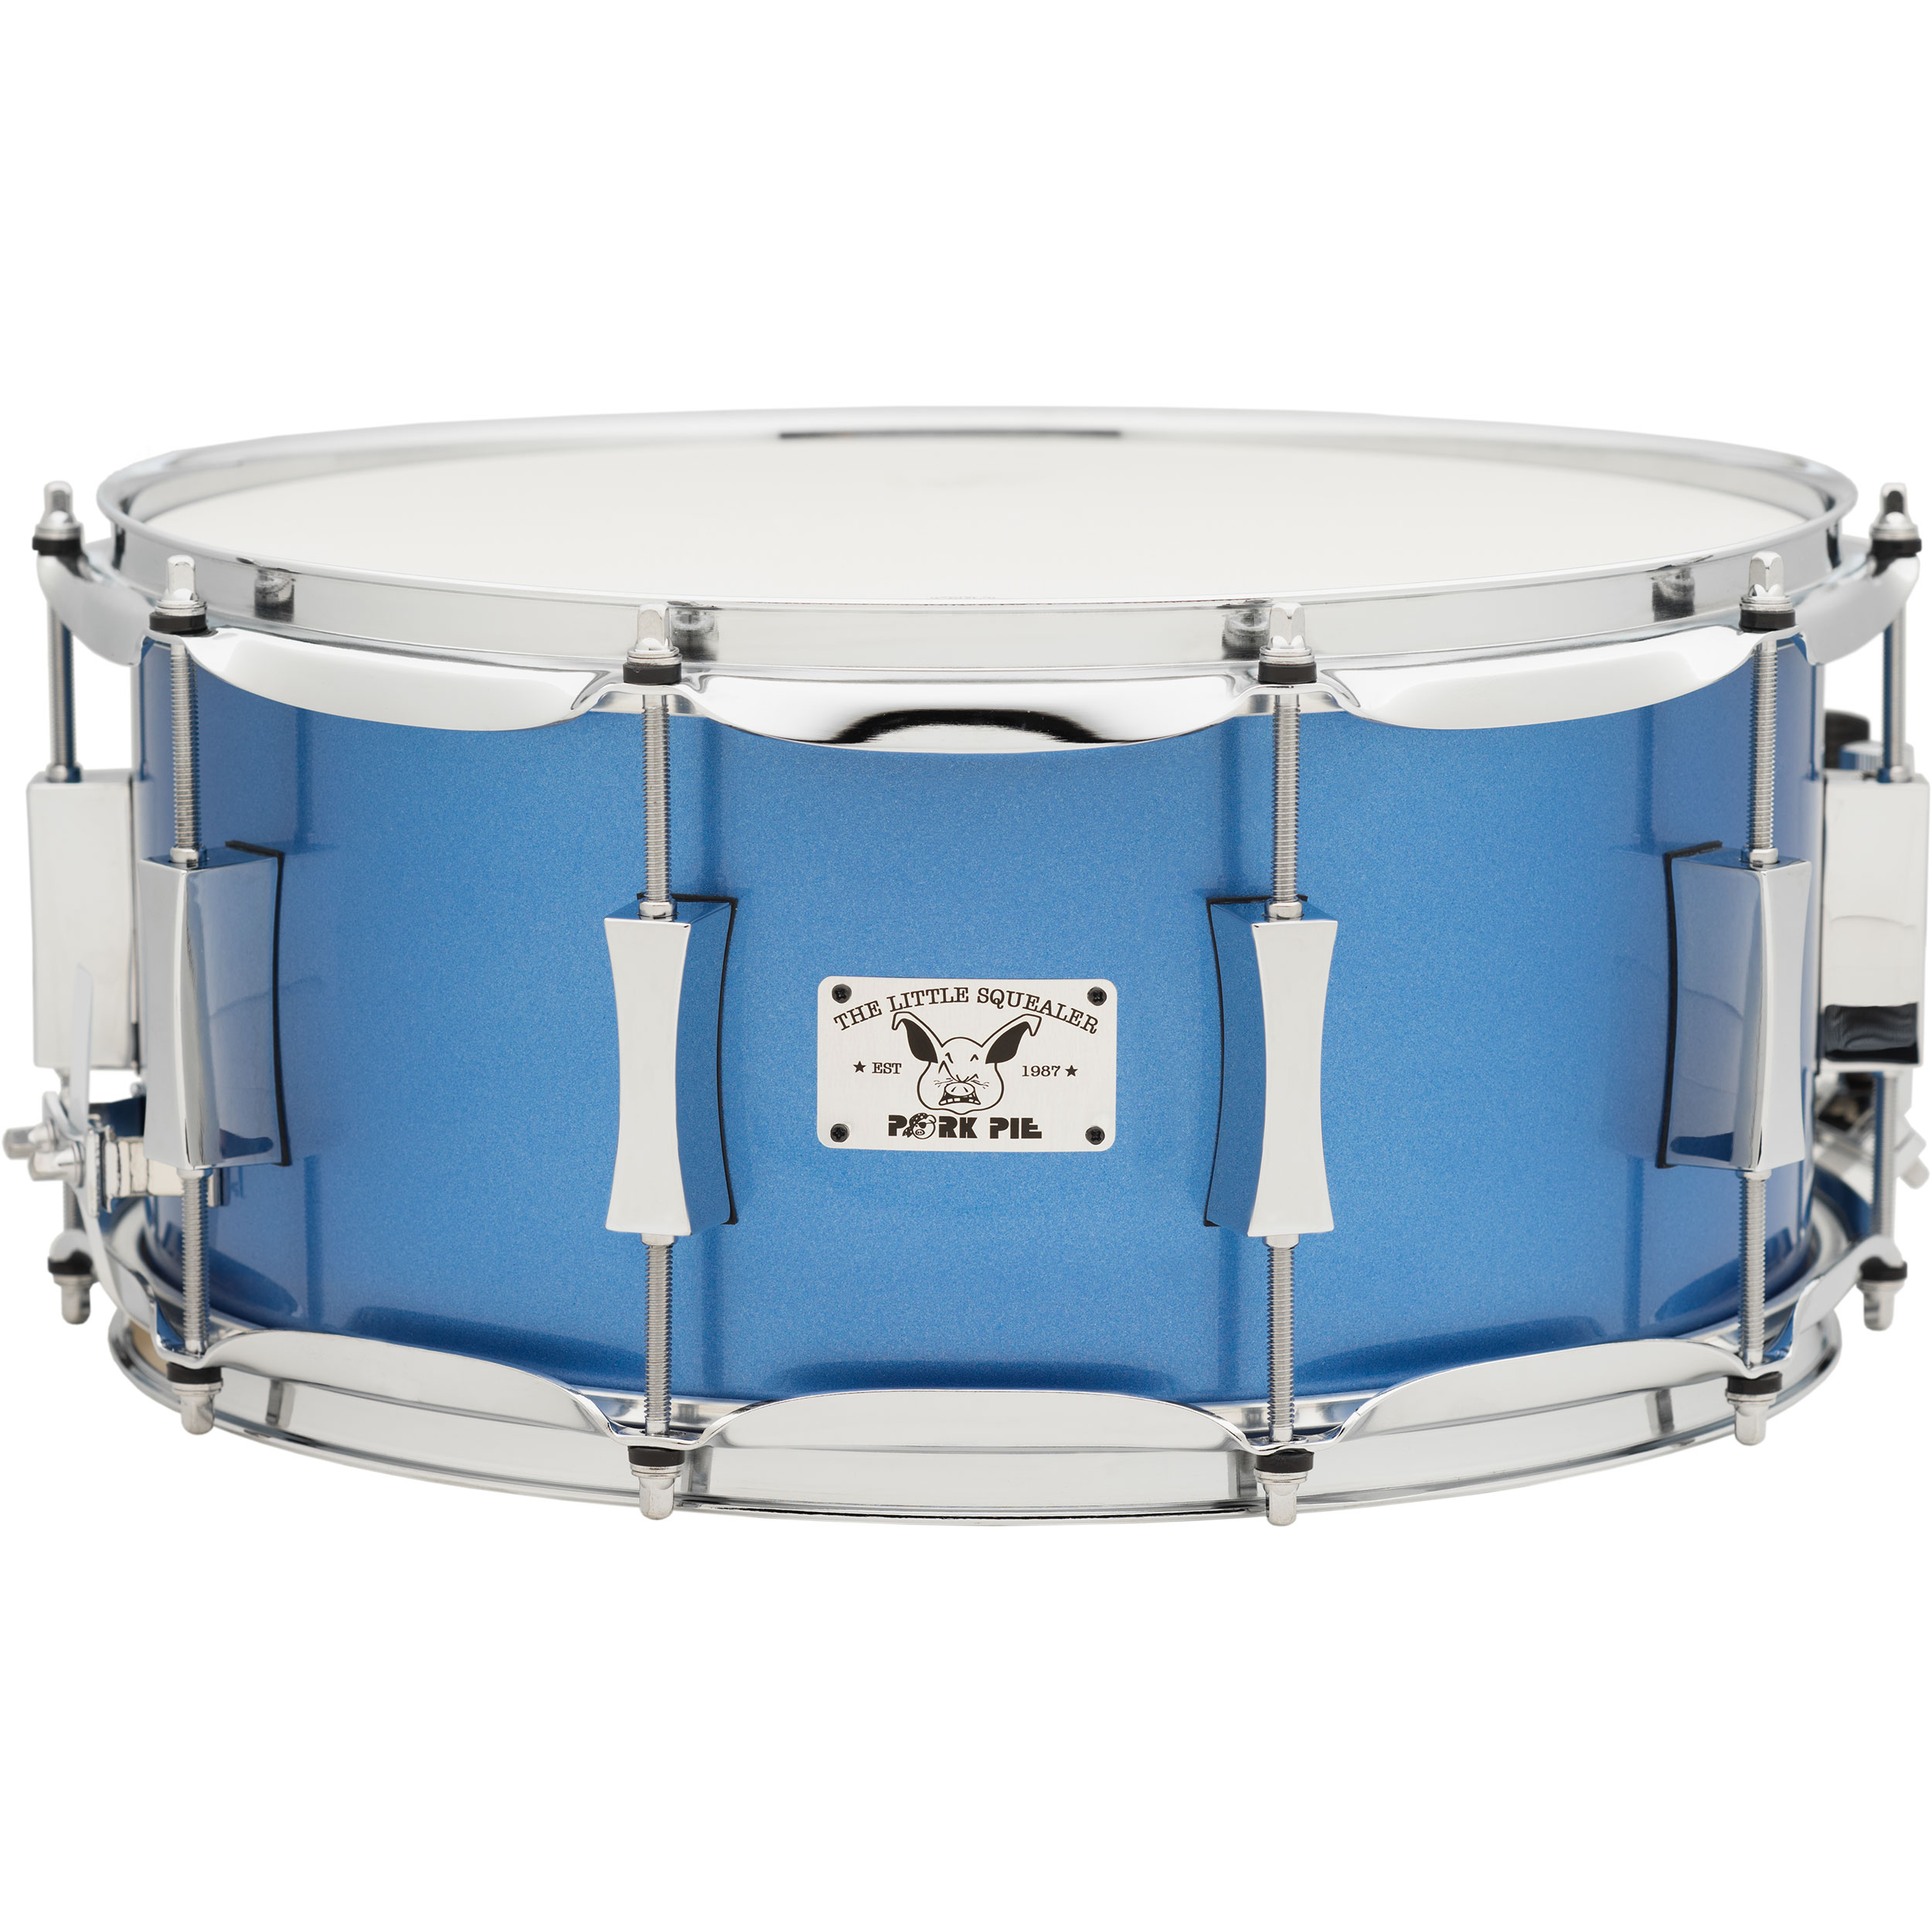 "Pork Pie Percussion 6.5"" x 14"" Little Squealer Birch/Mahogany Snare Drum in Porcaro Blue Metallic Lacquer"